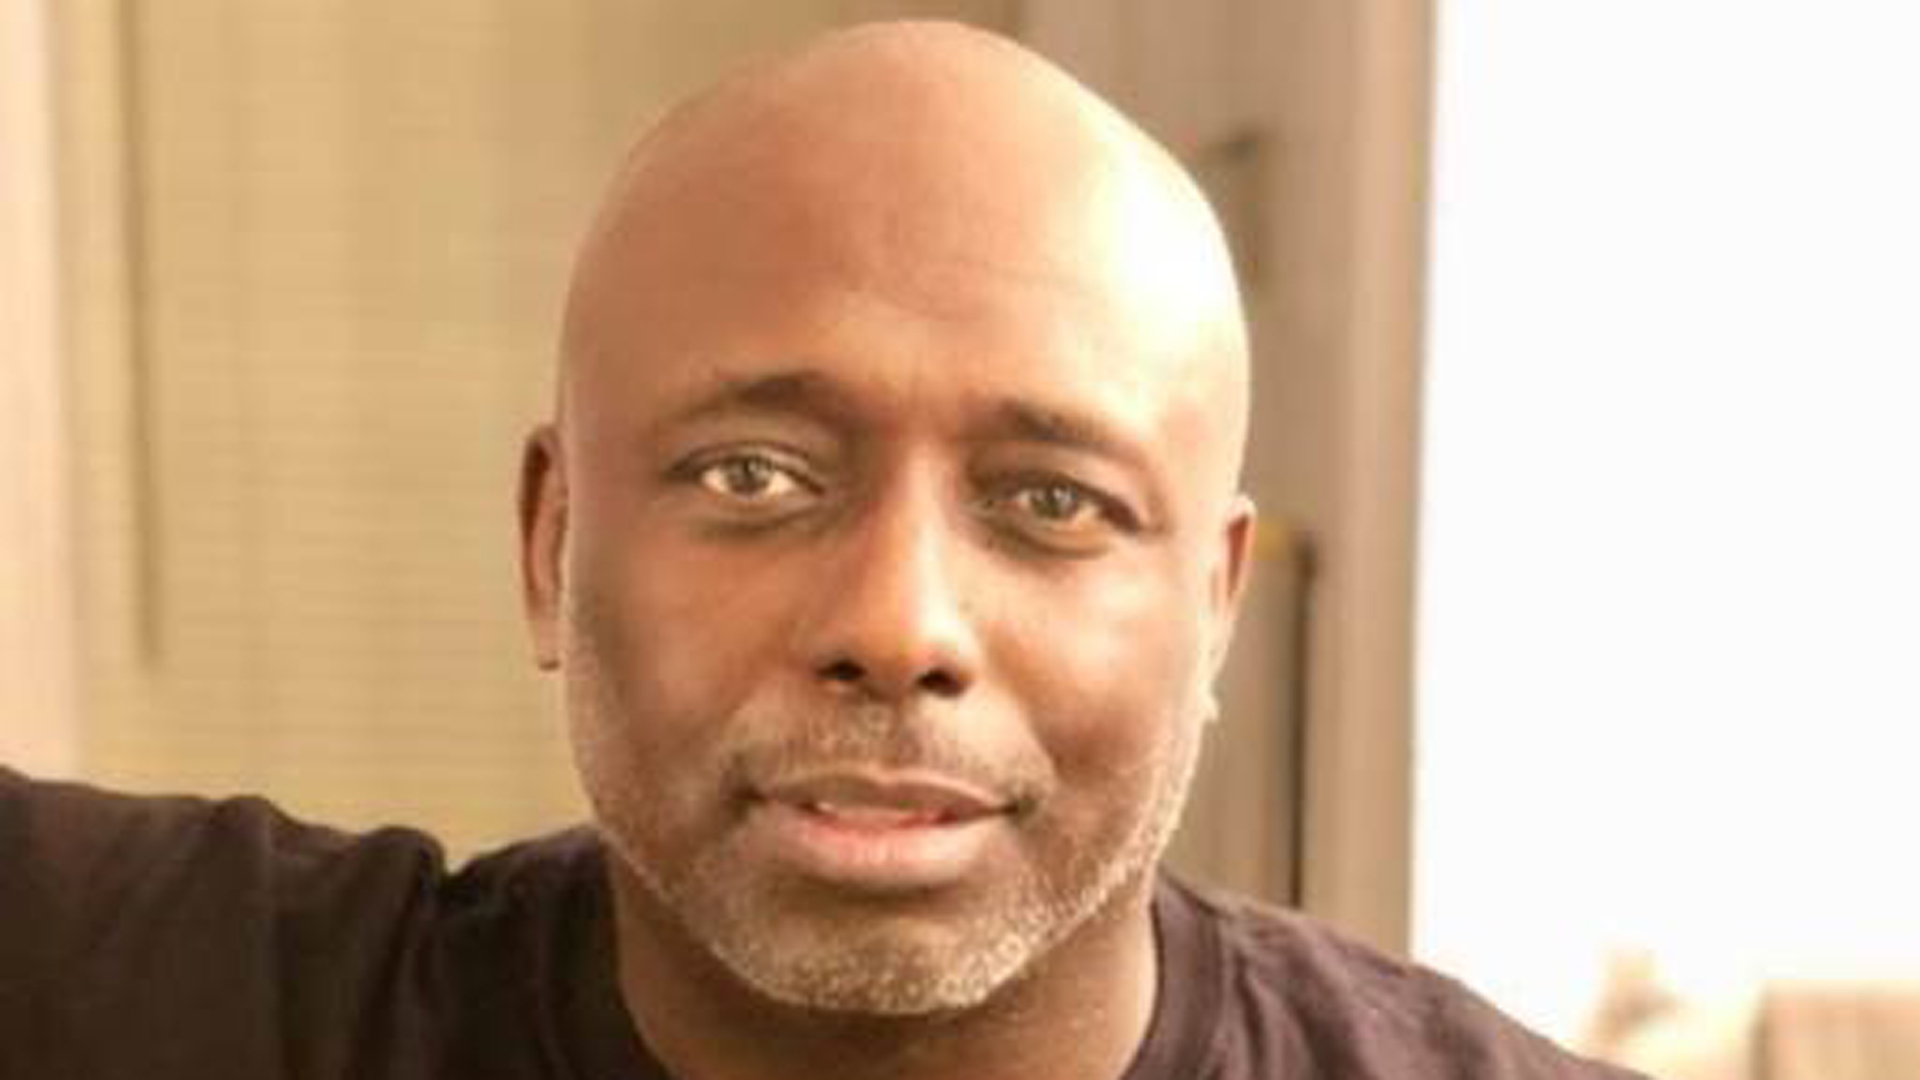 Officer Terrence Carraway is shown in an undated Facebook photo provided to CNN.